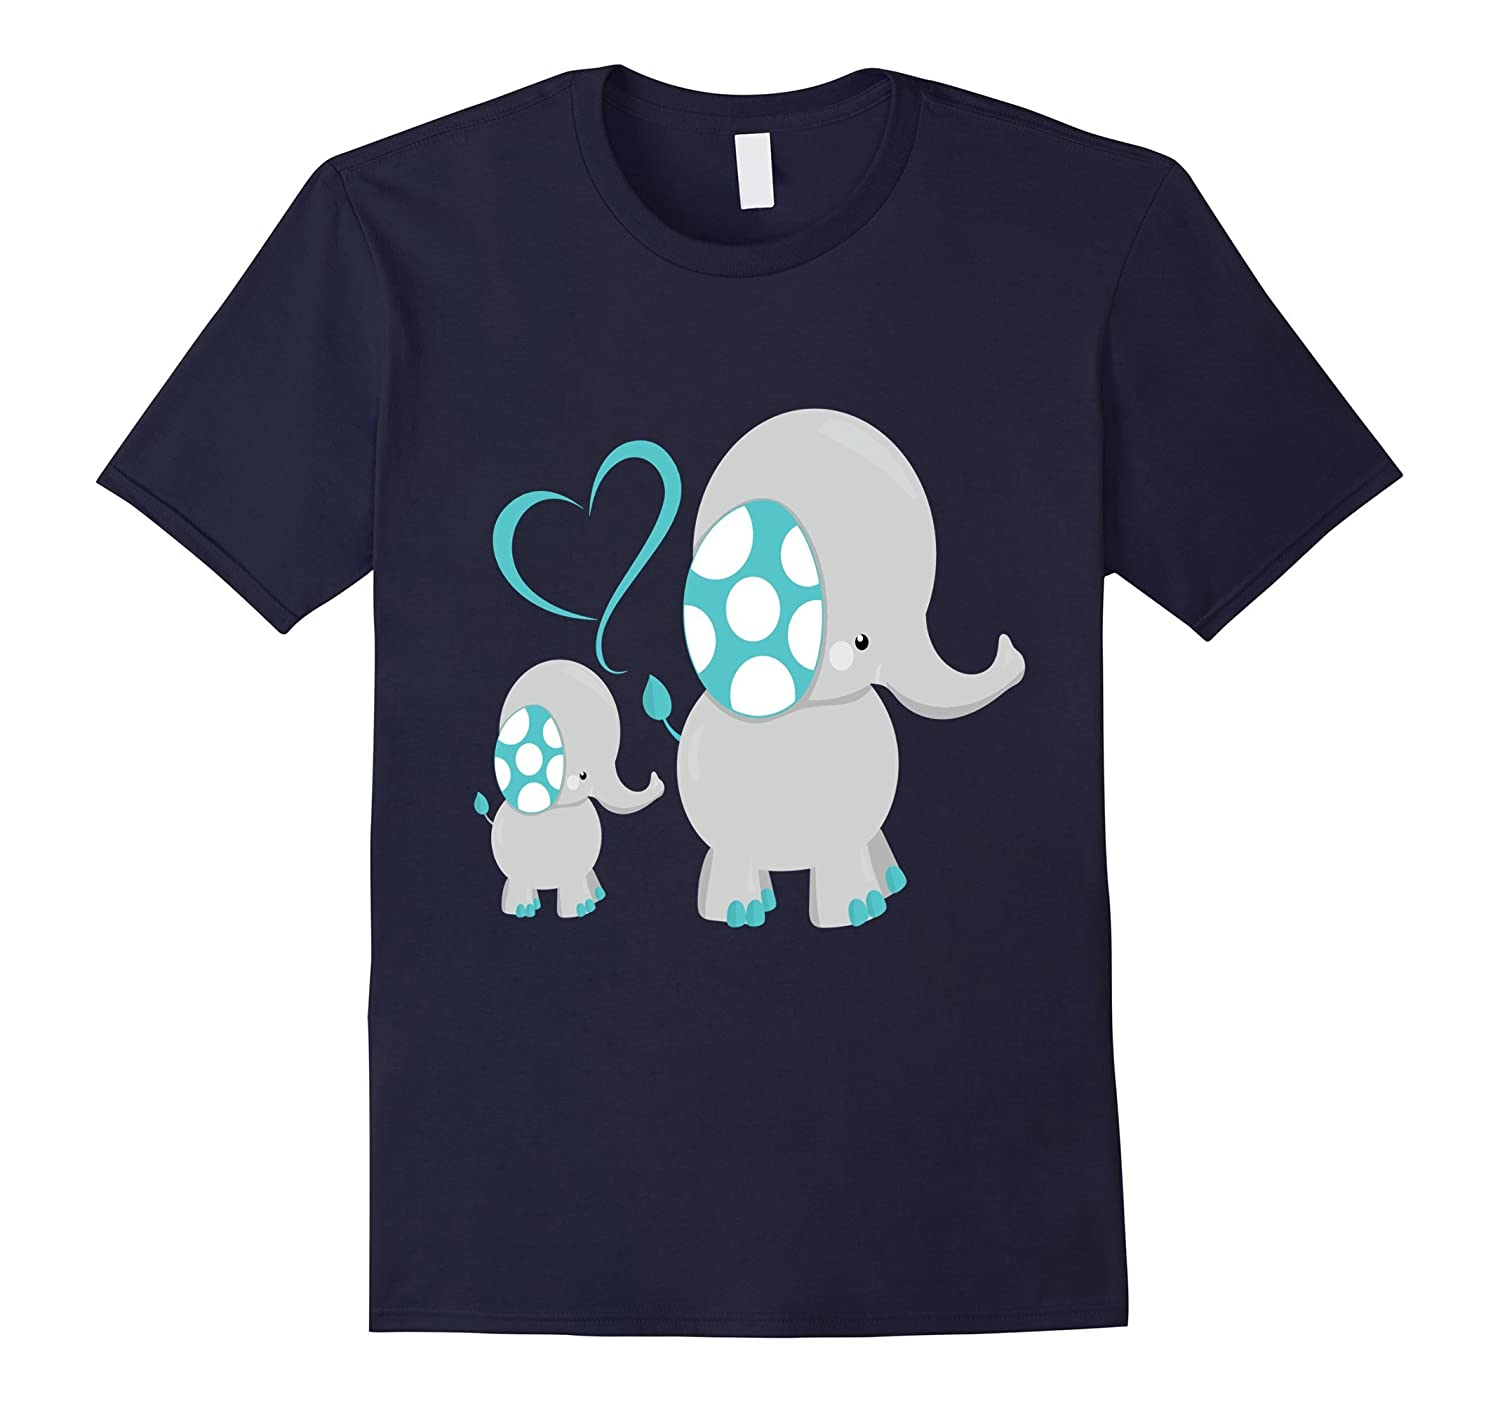 5aac86f02795 Baby Boy Elephant Shirt Blue Cute Kids Son Gray Mom Dad-TH - TEEHELEN